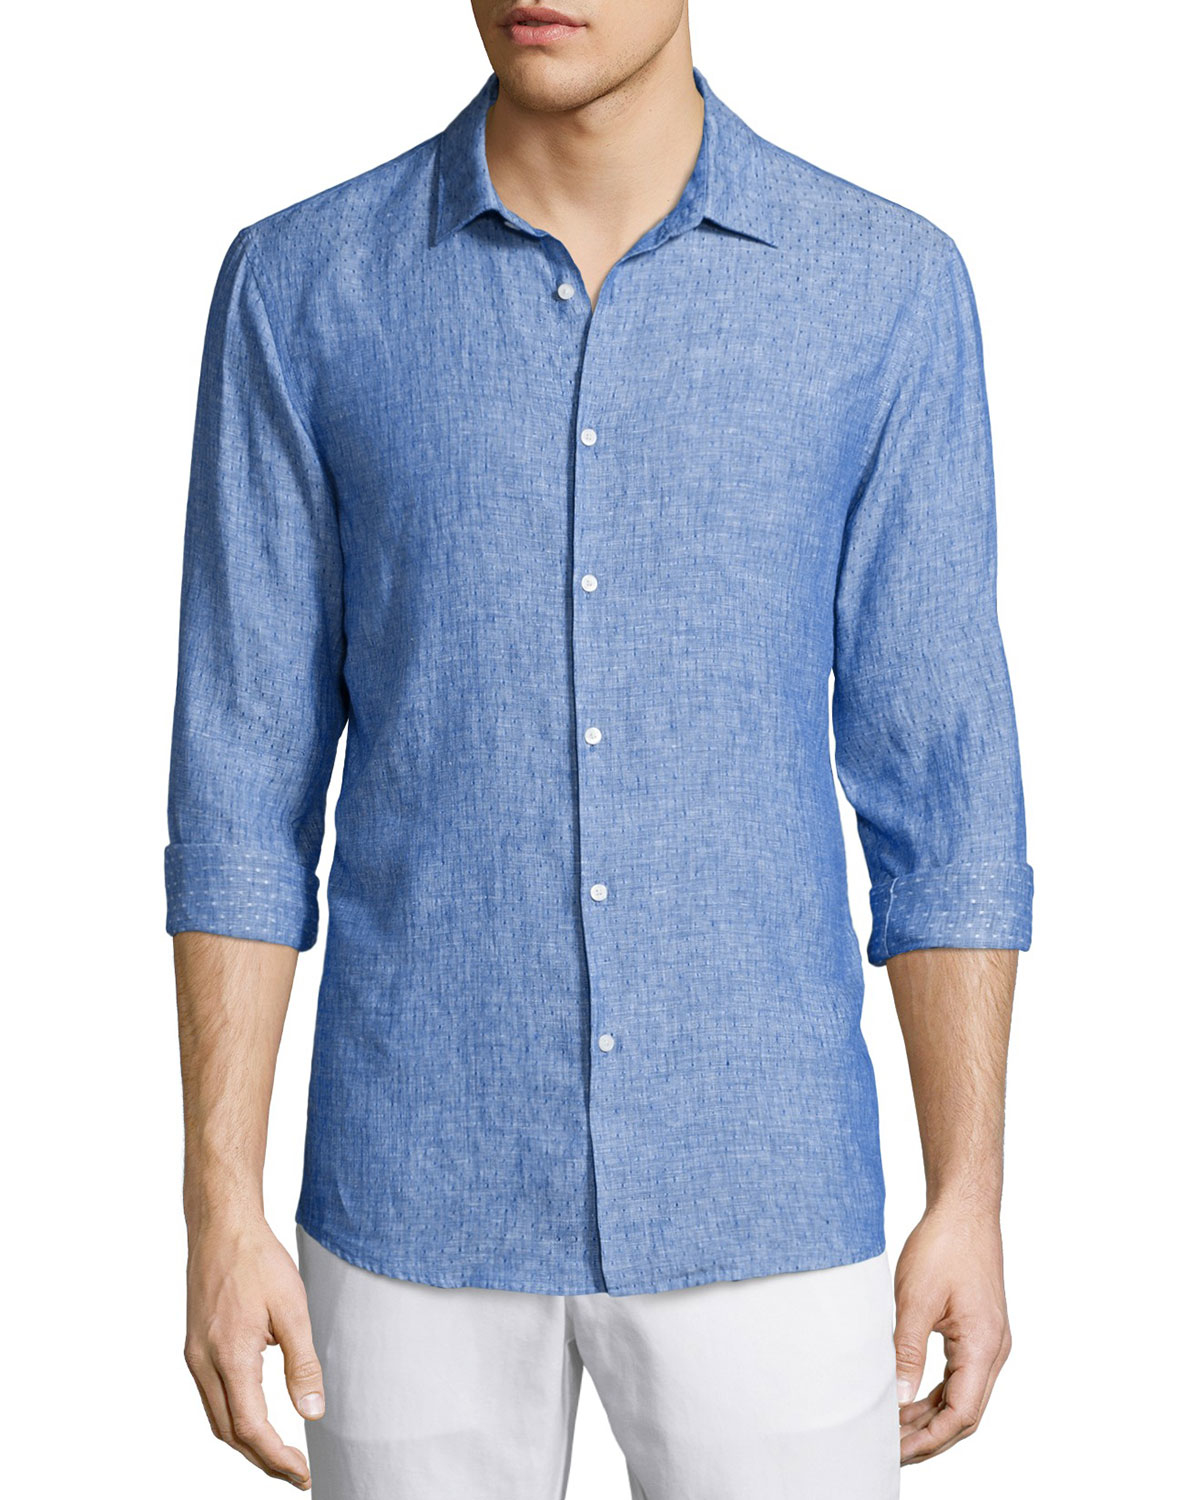 Michael kors textured dobby slim fit linen shirt in blue for Michael kors mens shirts sale